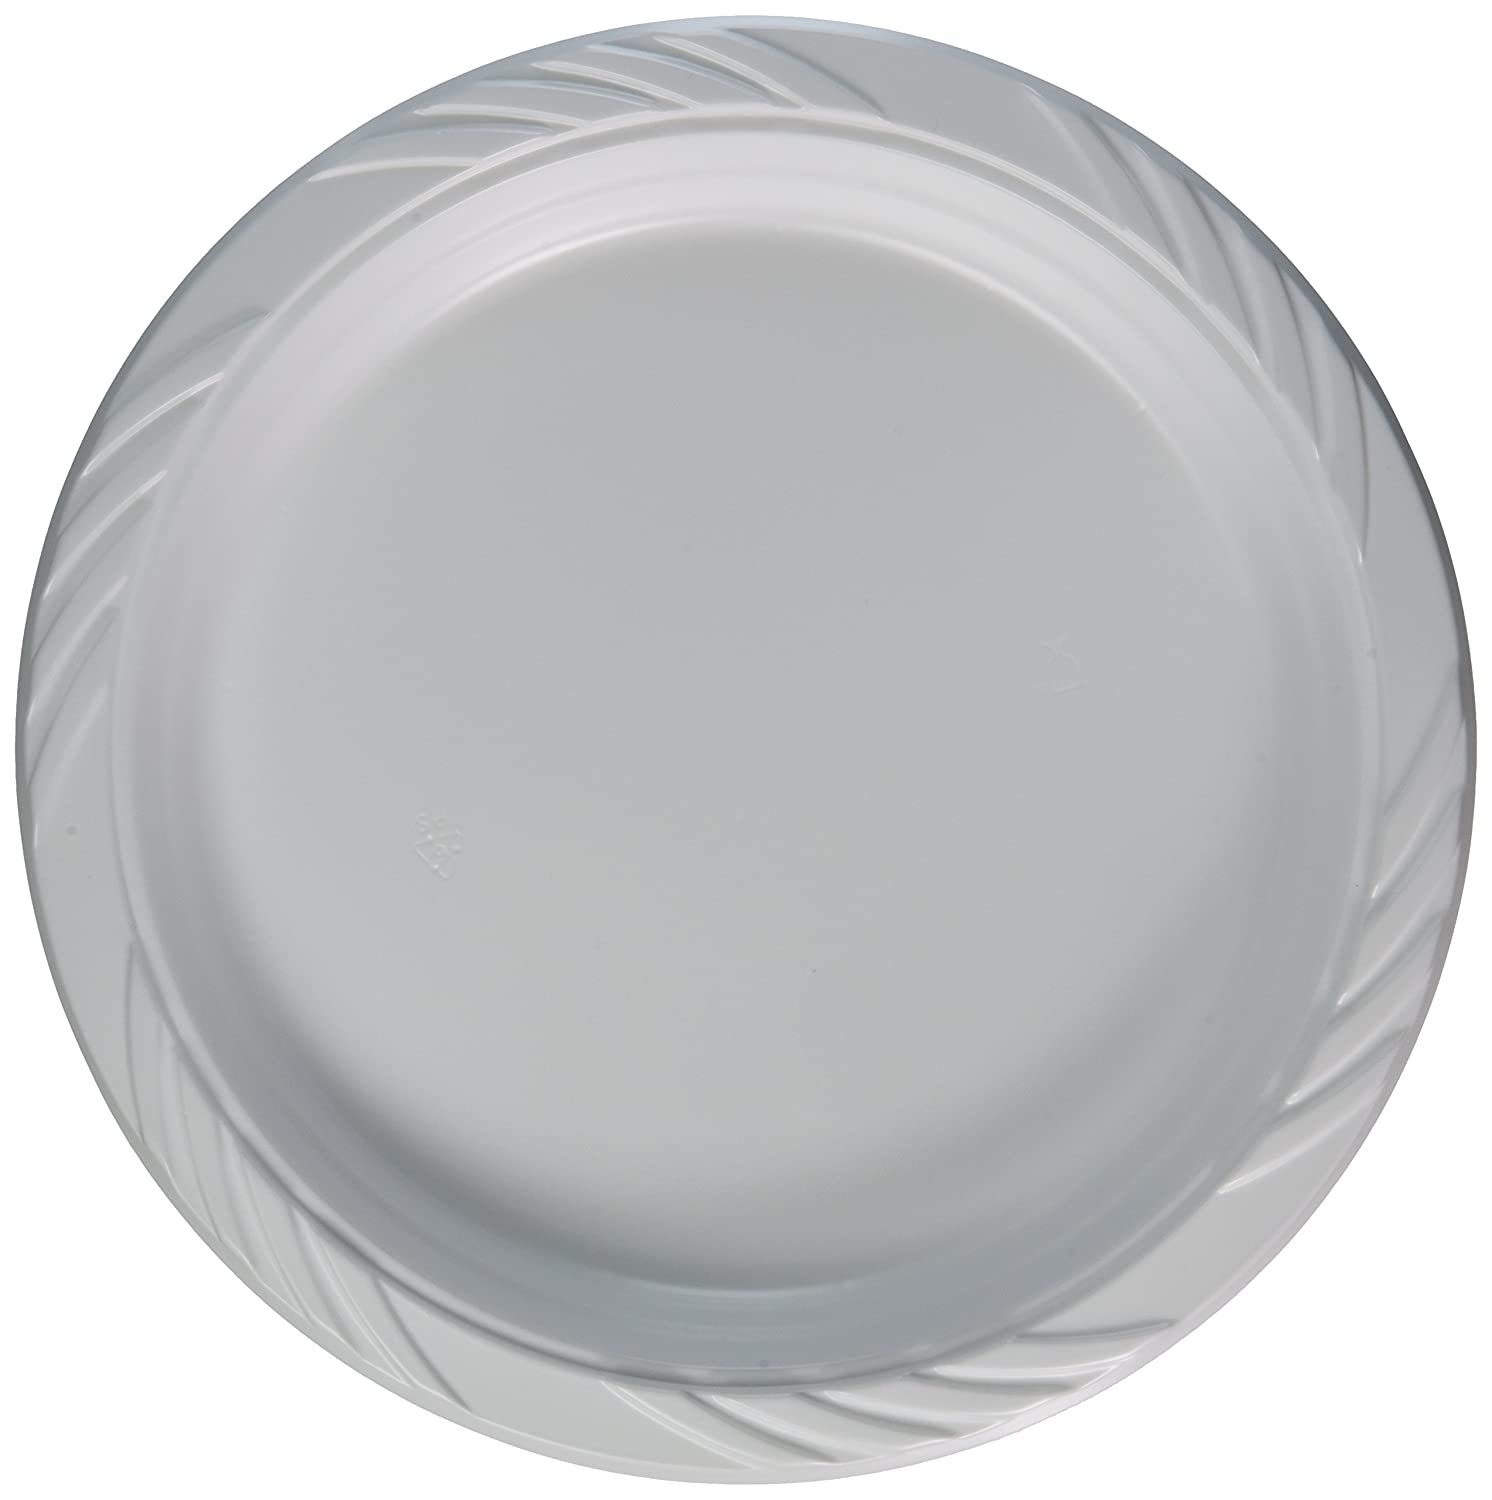 Amazon.com Blue Sky 100 Count Disposable Plastic Plates 9-Inch White Kitchen u0026 Dining  sc 1 st  Amazon.com & Amazon.com: Blue Sky 100 Count Disposable Plastic Plates 9-Inch ...